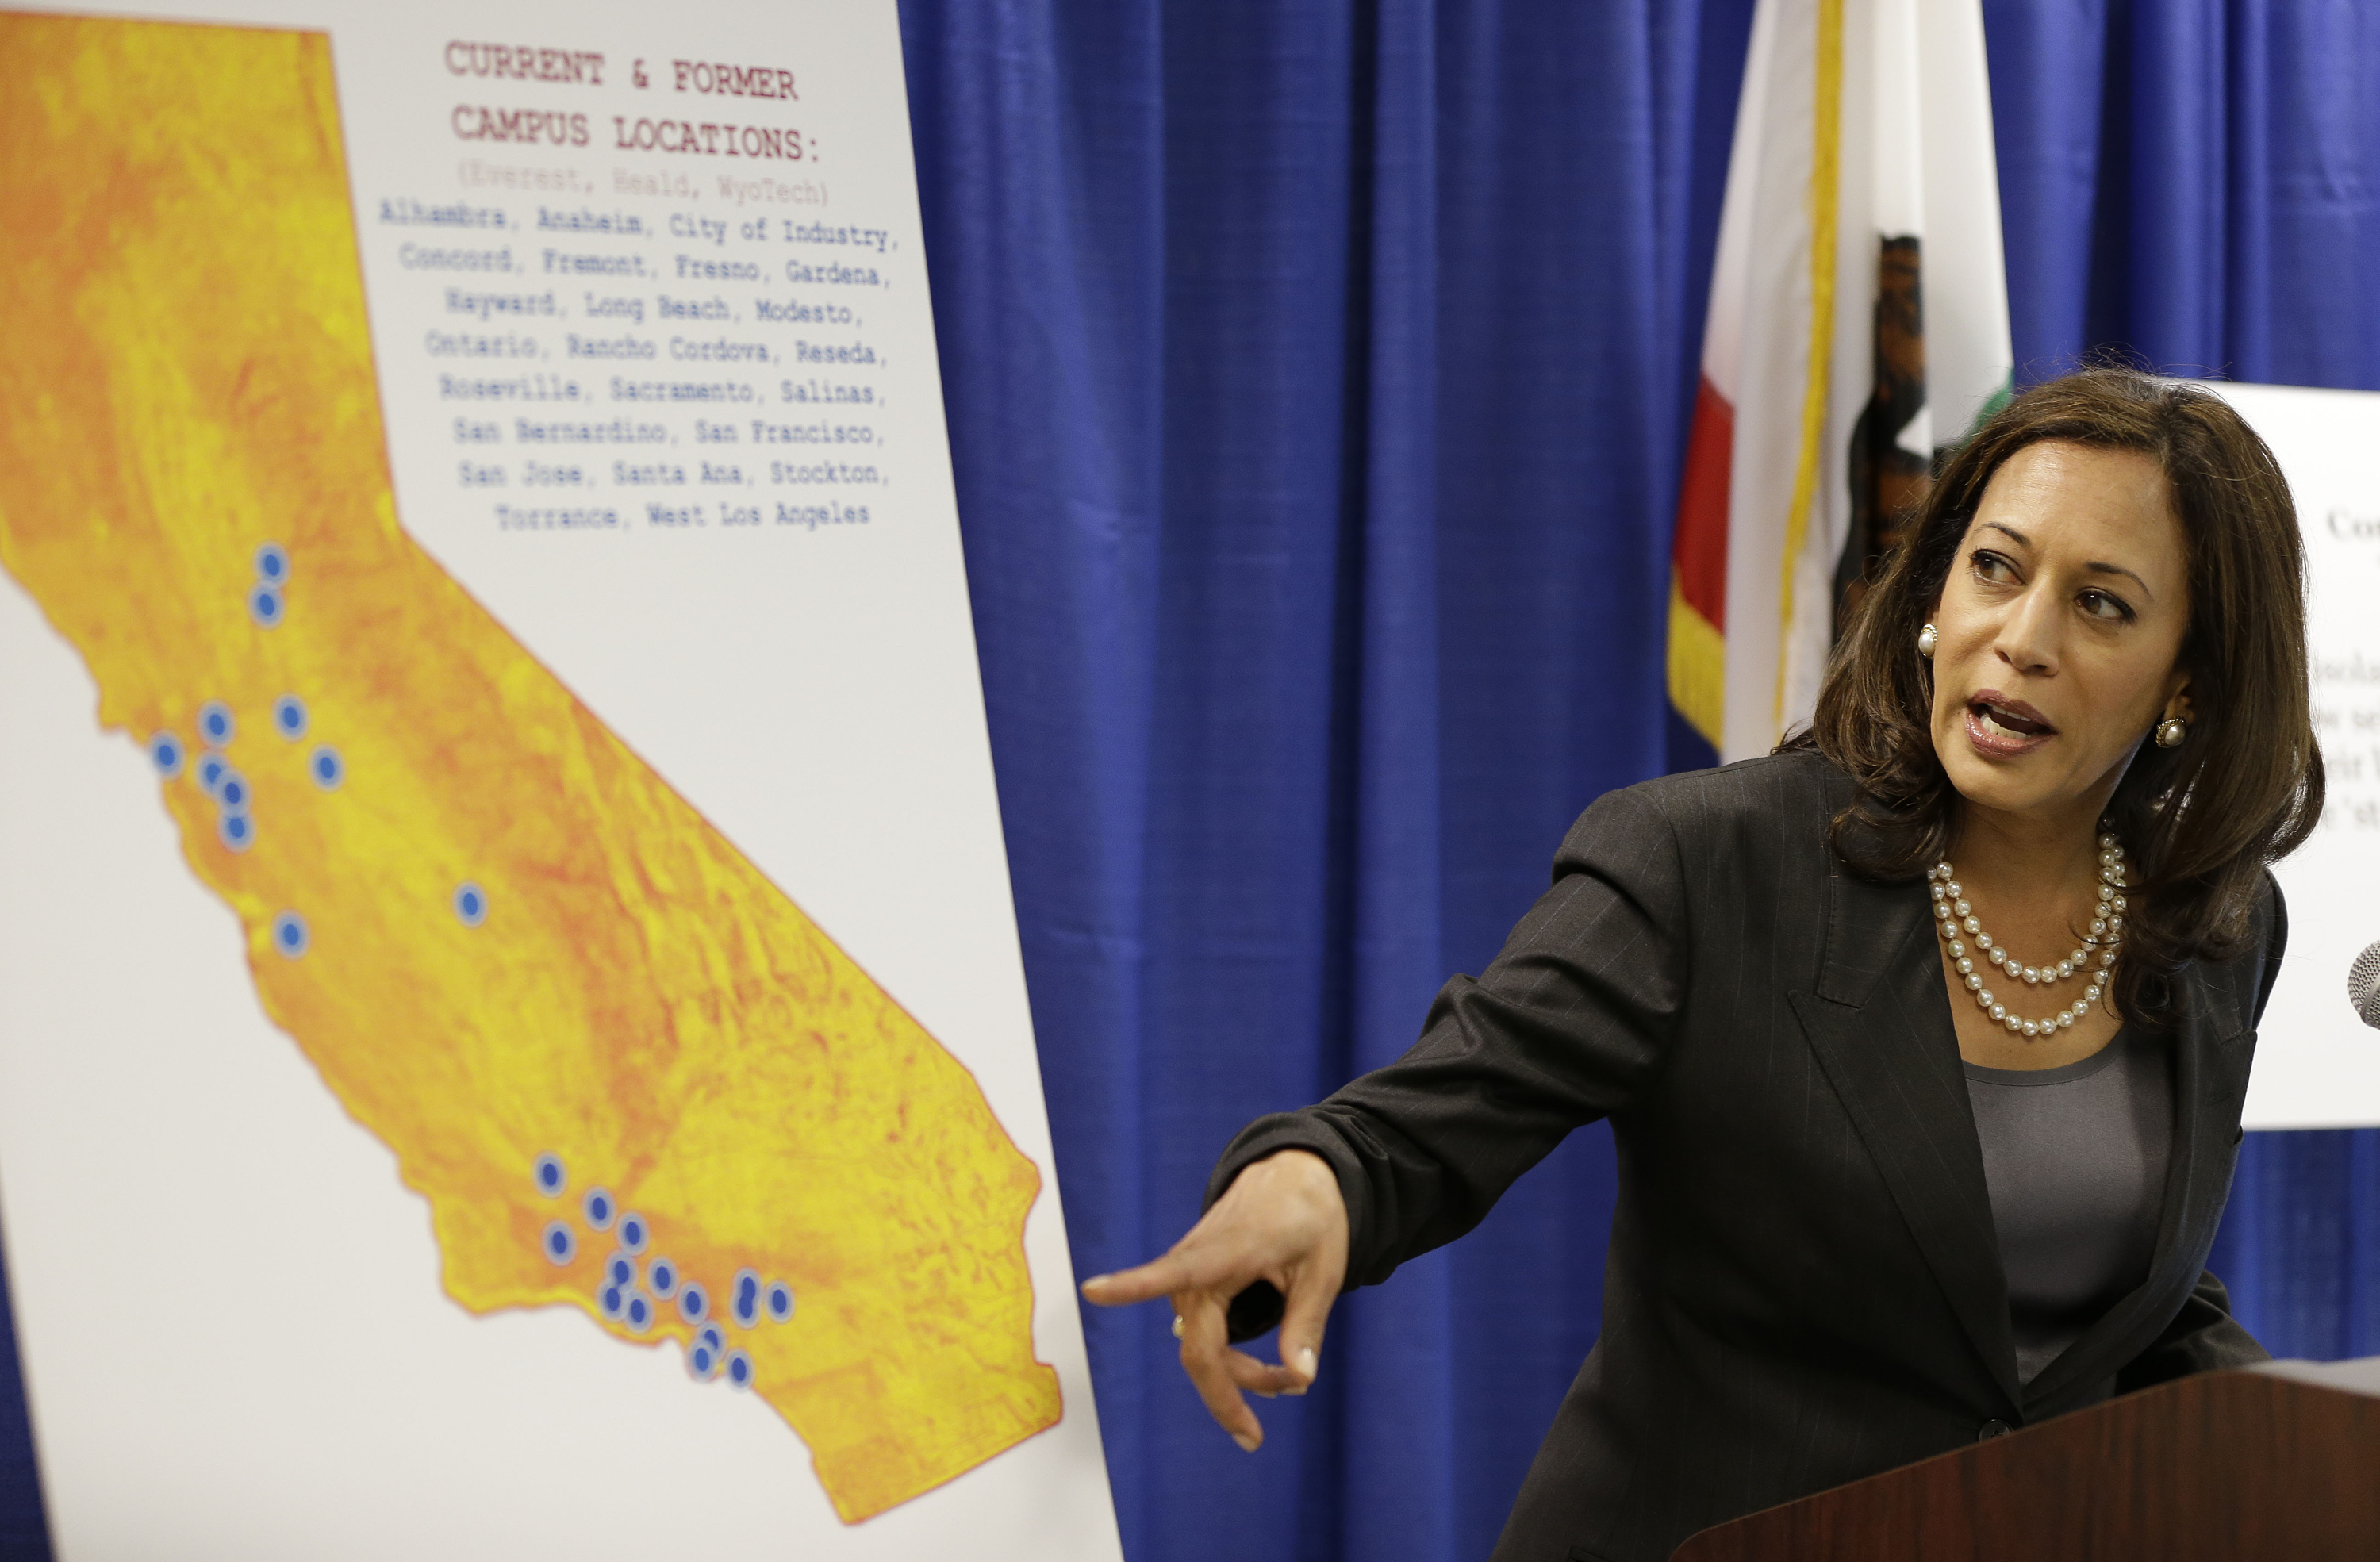 FILE - In this Mar. 24, 2016, file photo, California Attorney General Kamala Harris points to a display showing the location of Corinthian Colleges located in California during a news conference in San Francisco.